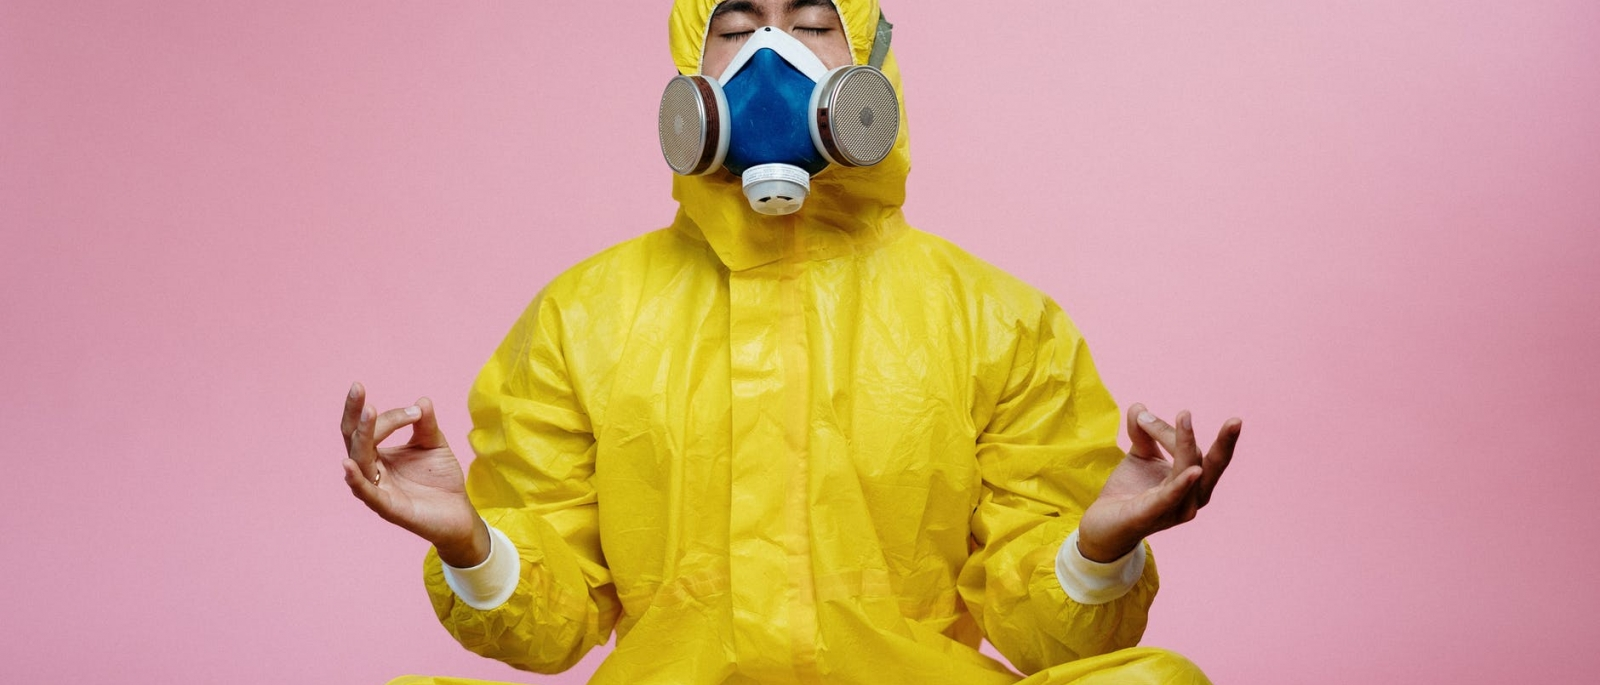 Asbestos - The Dangers and & The Regulations